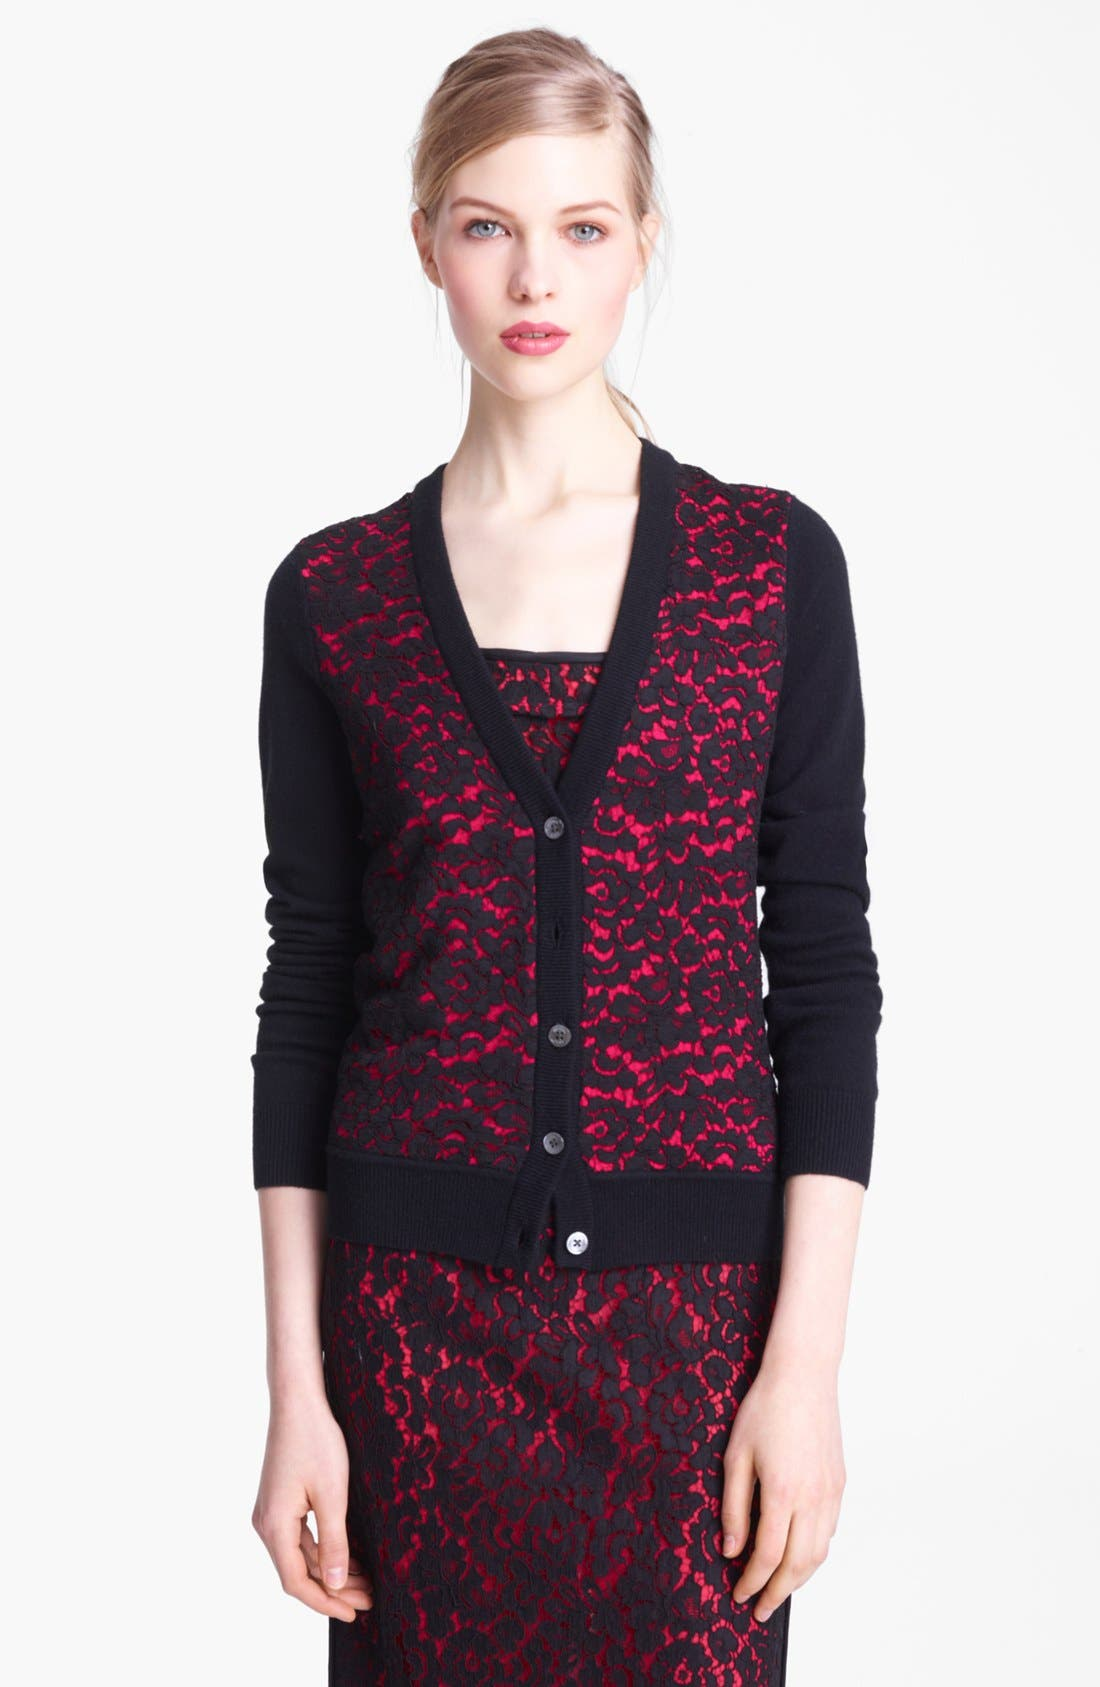 Alternate Image 1 Selected - Michael Kors Lace Front Cashmere Cardigan